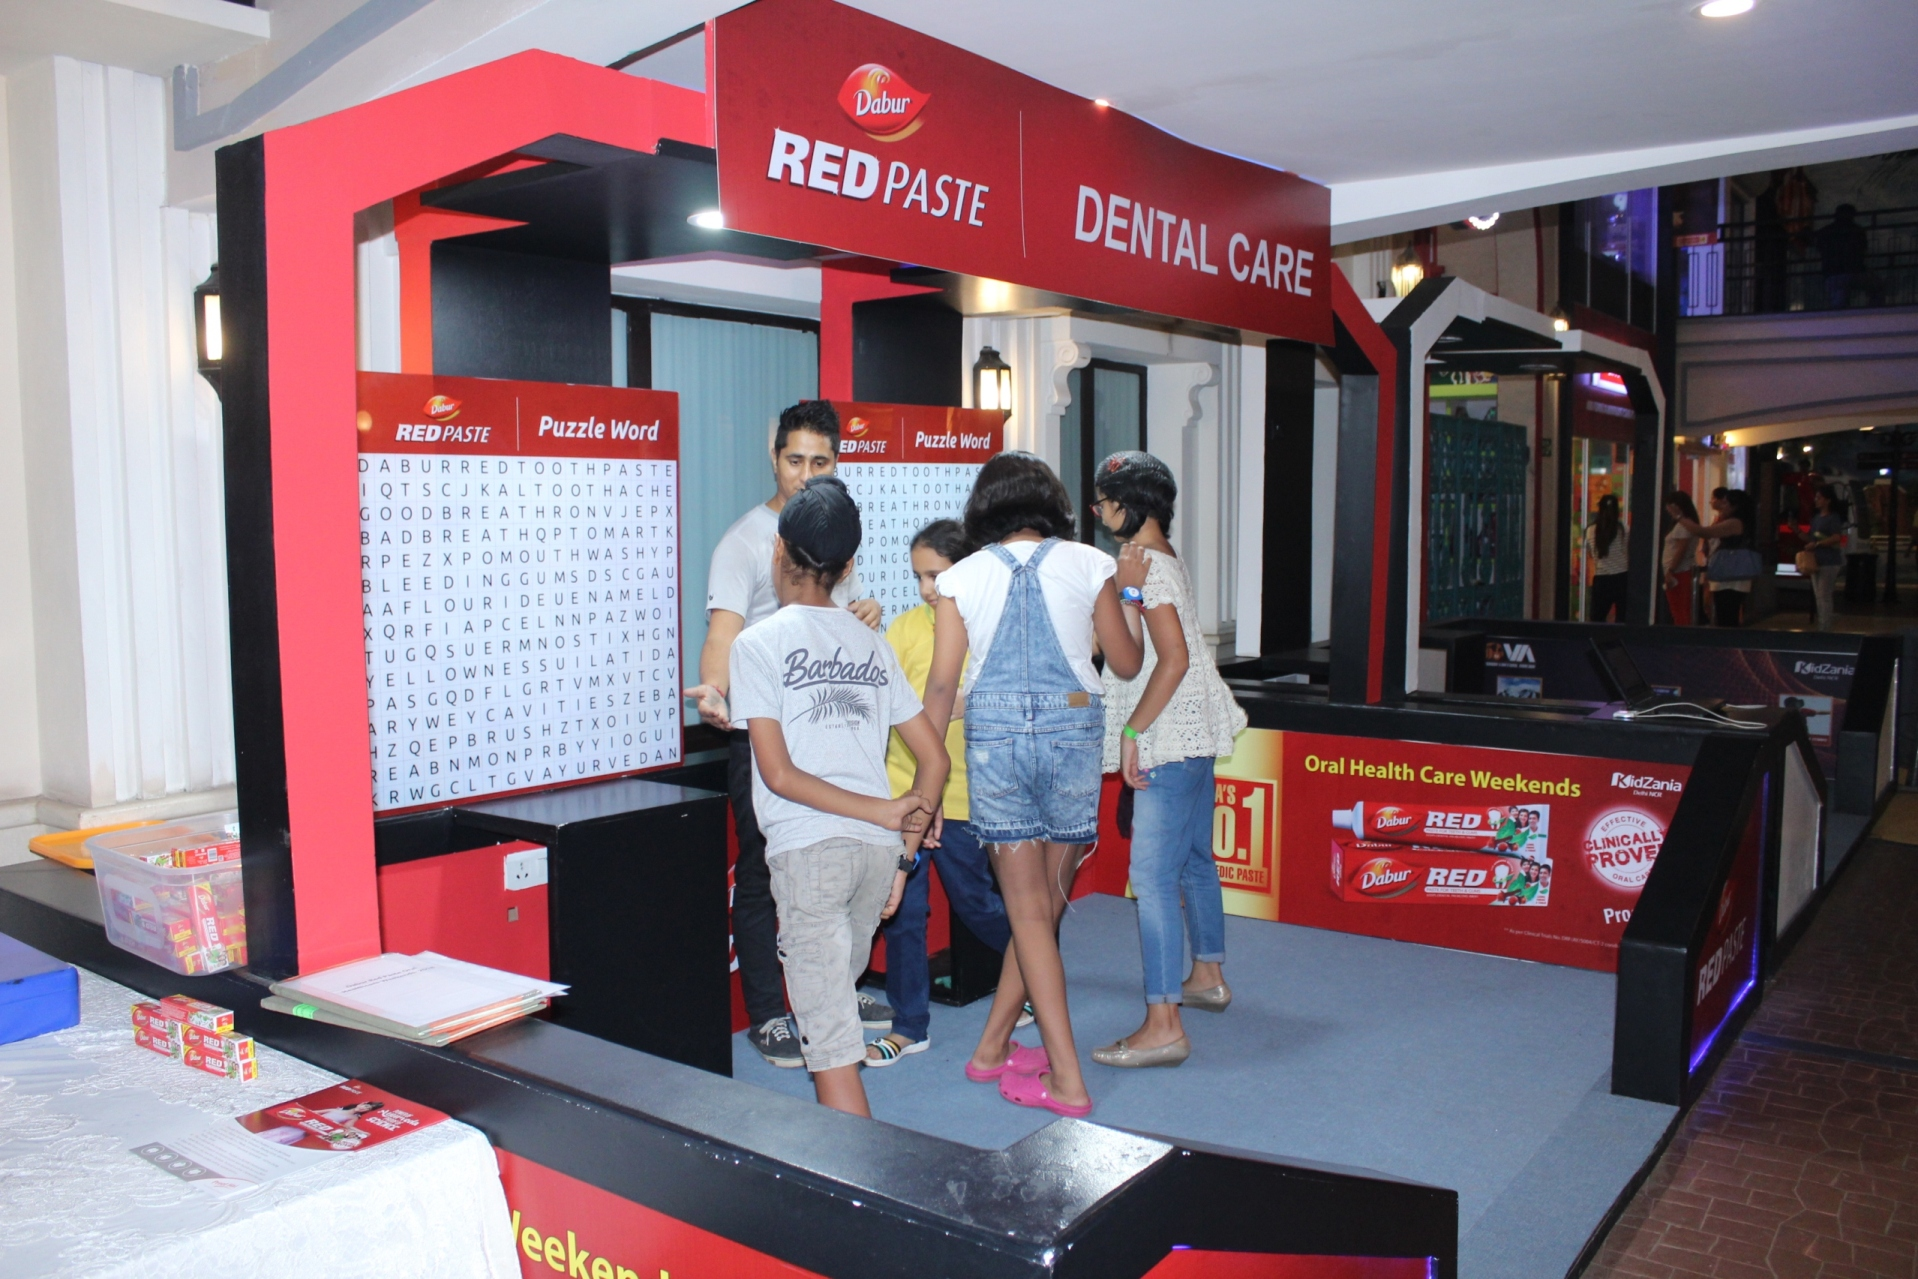 Dabur Red Paste Oral Care weekends: A Healthy Initiative by Dabur at Kidzania